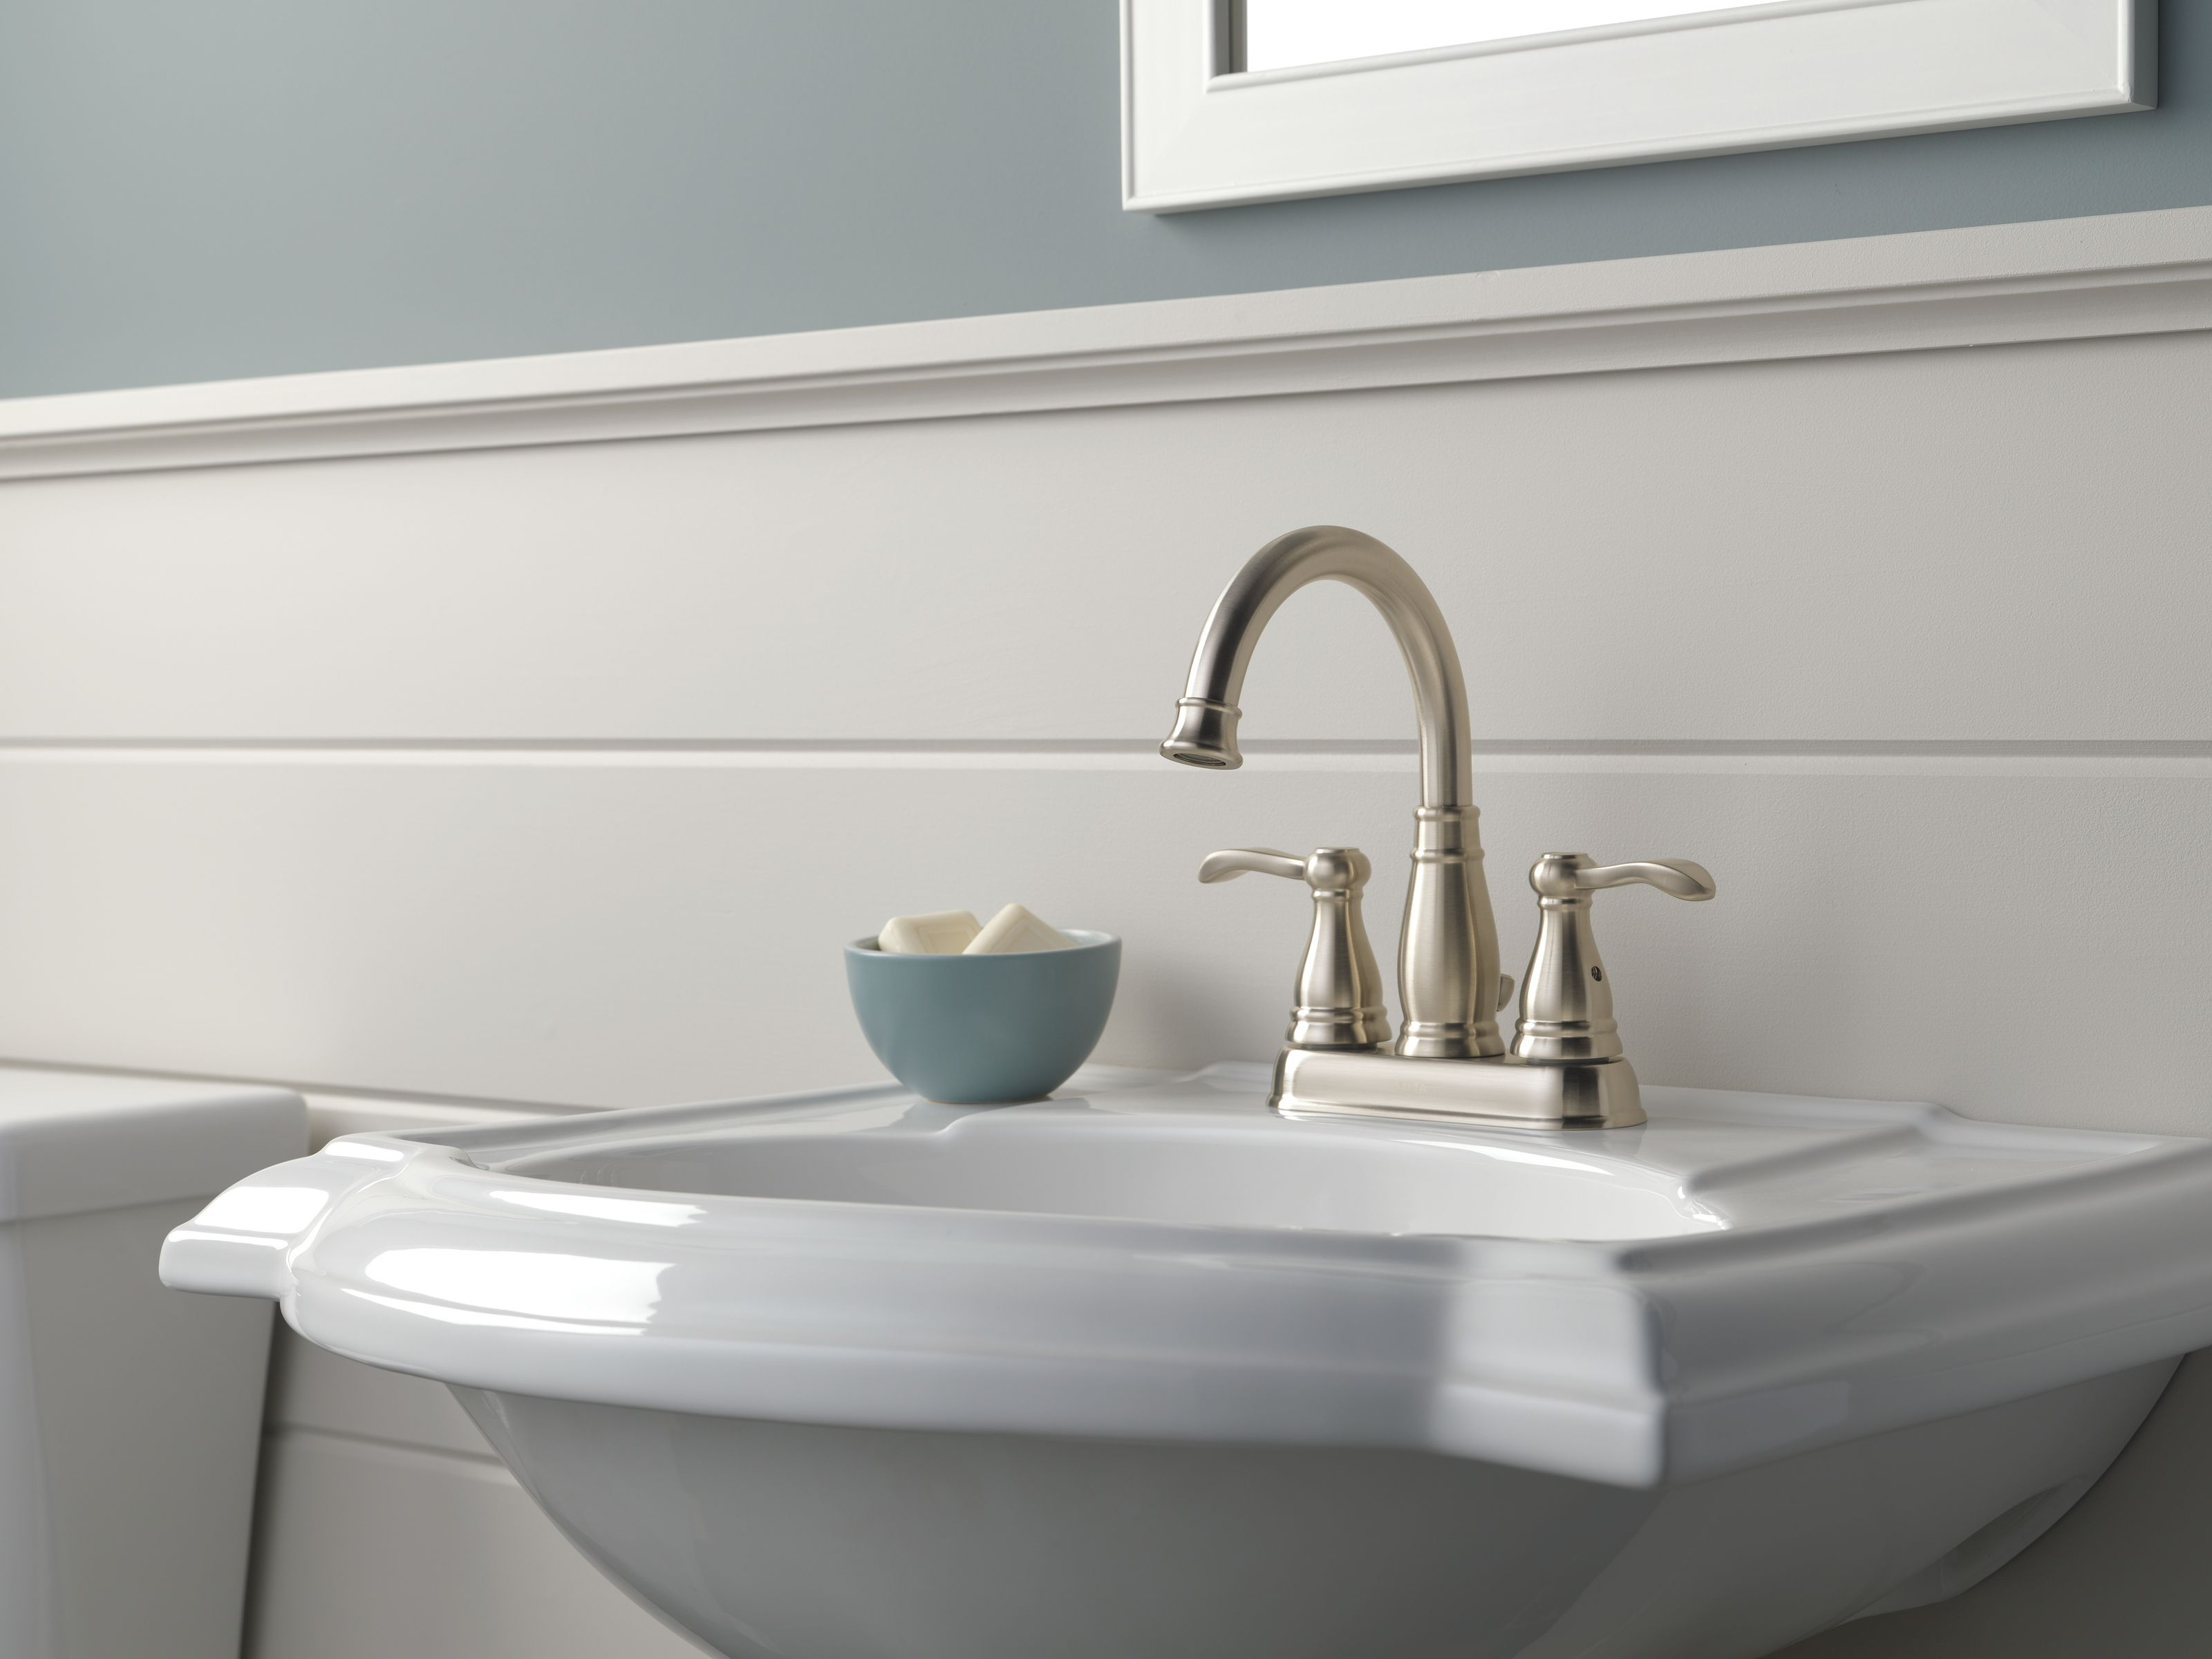 White Standing Pedestal Sink With Gorgeous Brushed Nickel Faucet